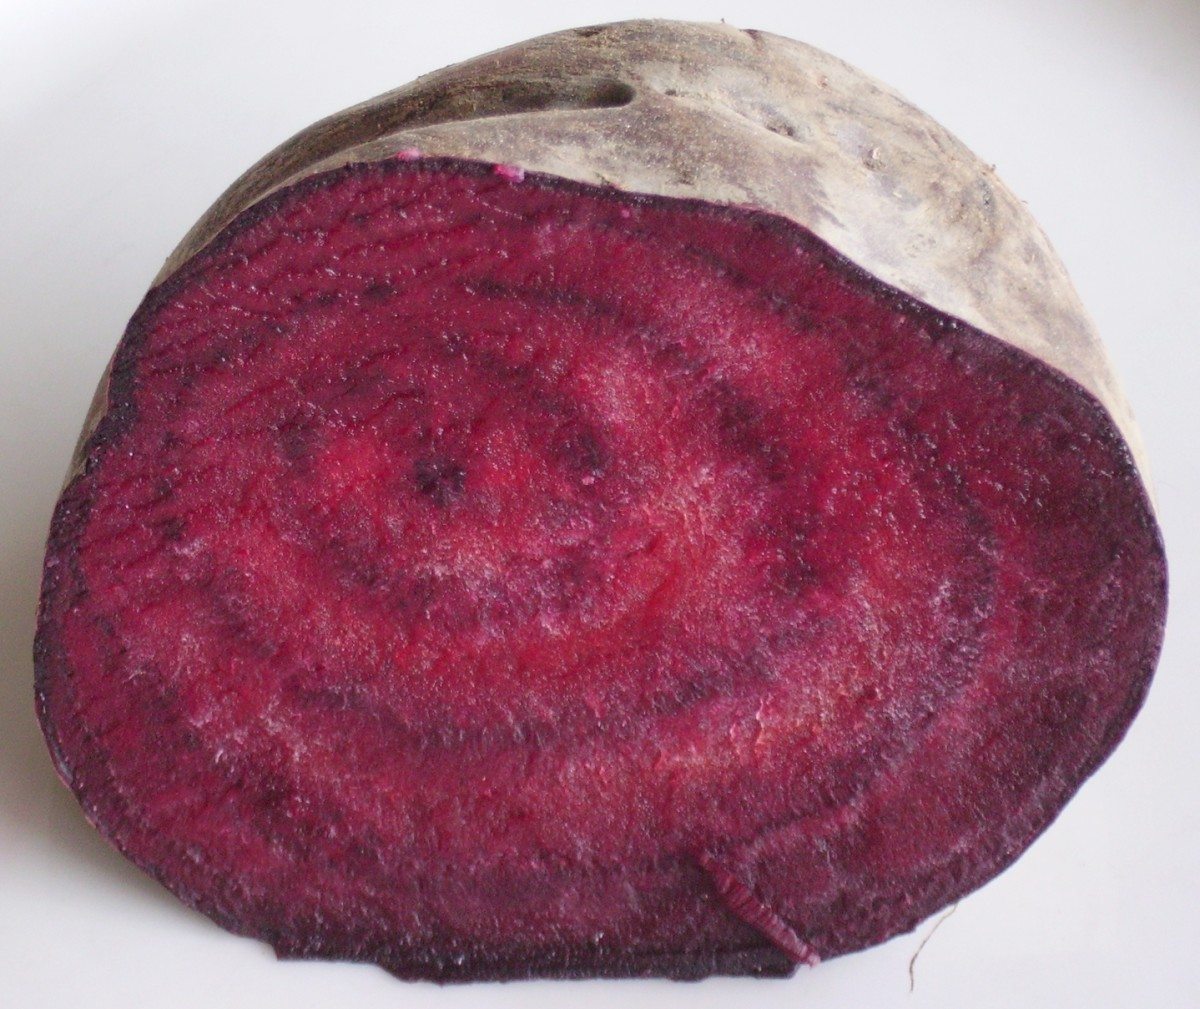 A cross section through beet root